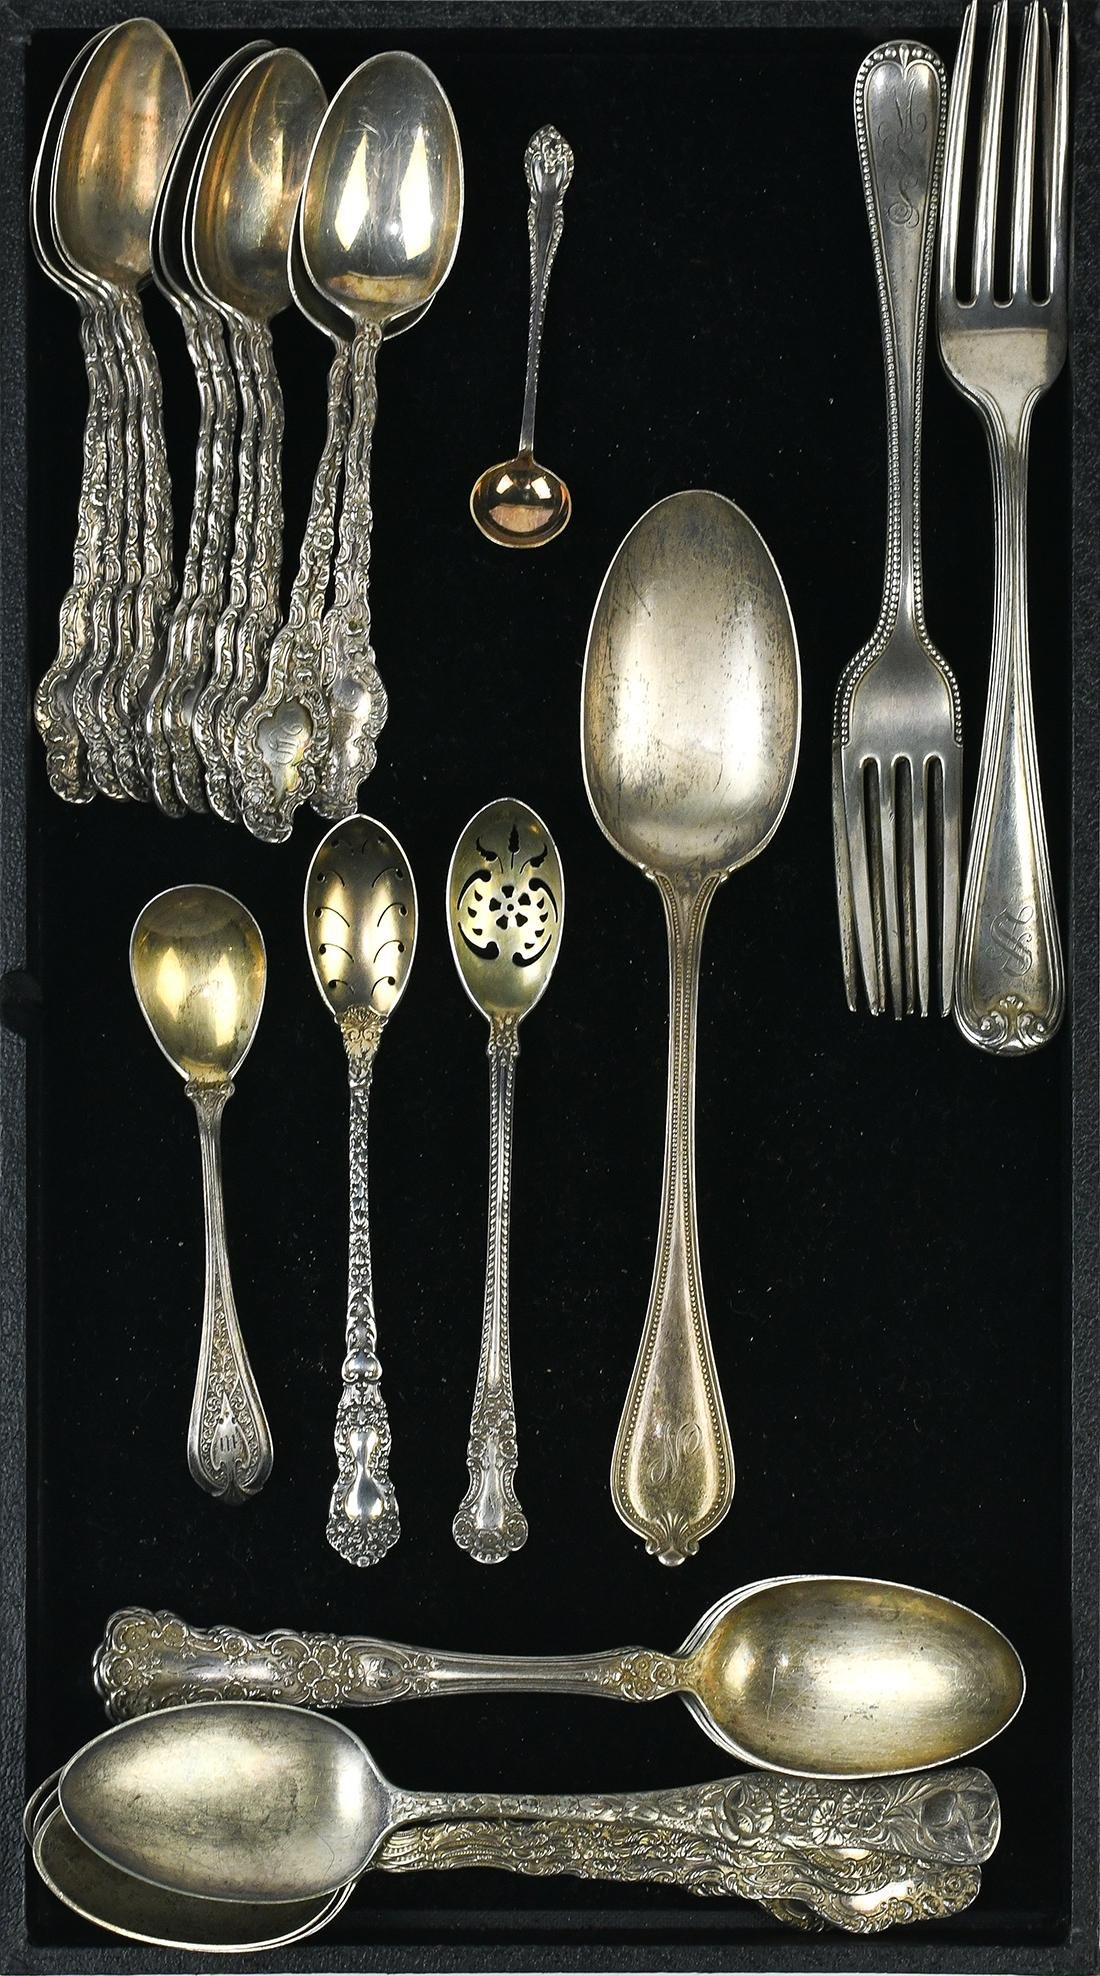 Assorted sterling silver flatware, including